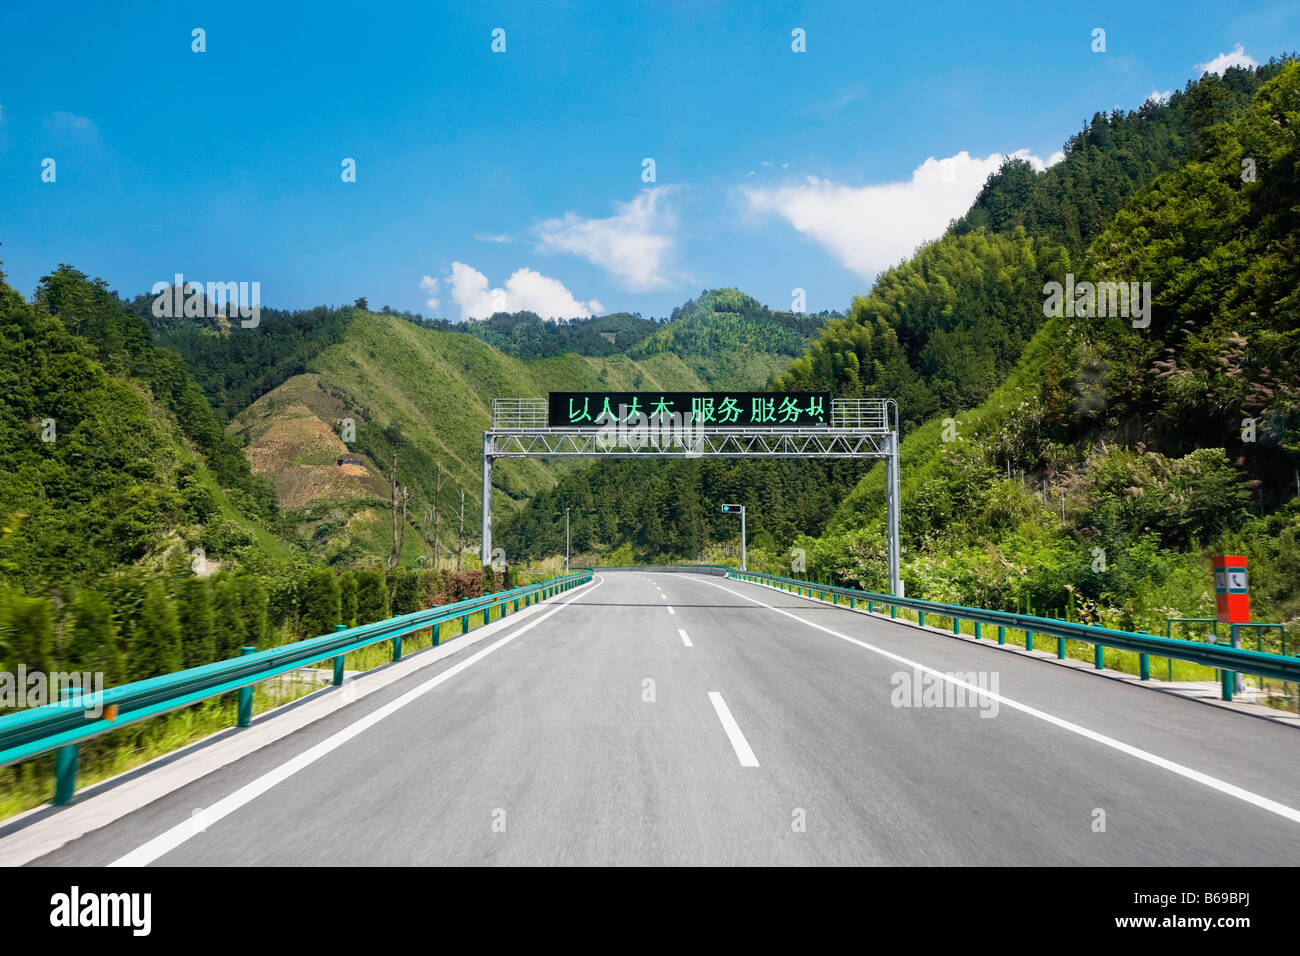 Road passing through mountains, Huangshan Mountains, Anhui Province, China - Stock Image